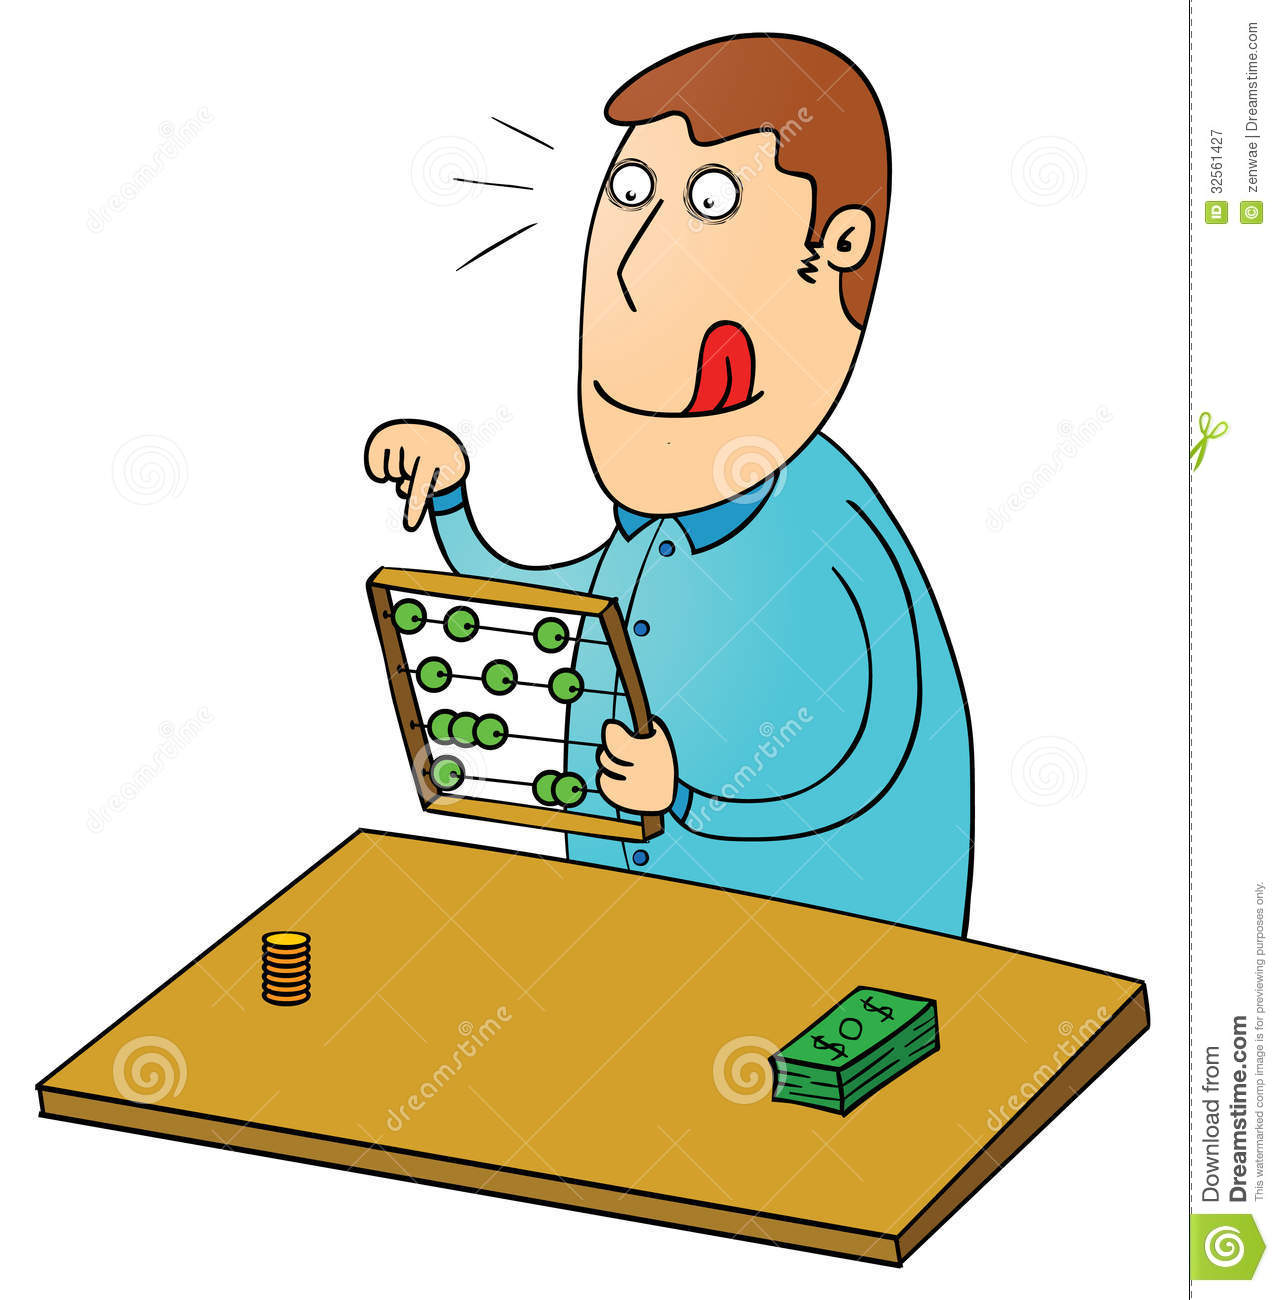 Counting Abacus Stock Illustrations – 458 Counting Abacus Stock ...